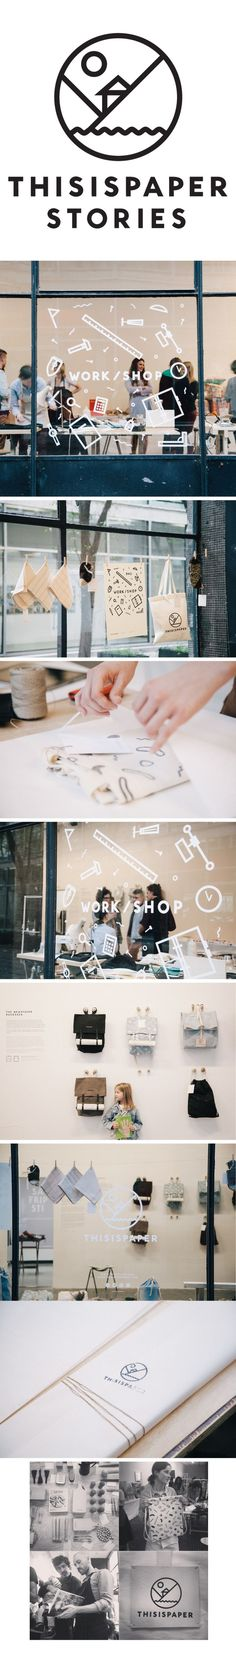 THISISPAPER WORK/SHOP at MOMA Warsaw - Thisispaper Stories #infographics